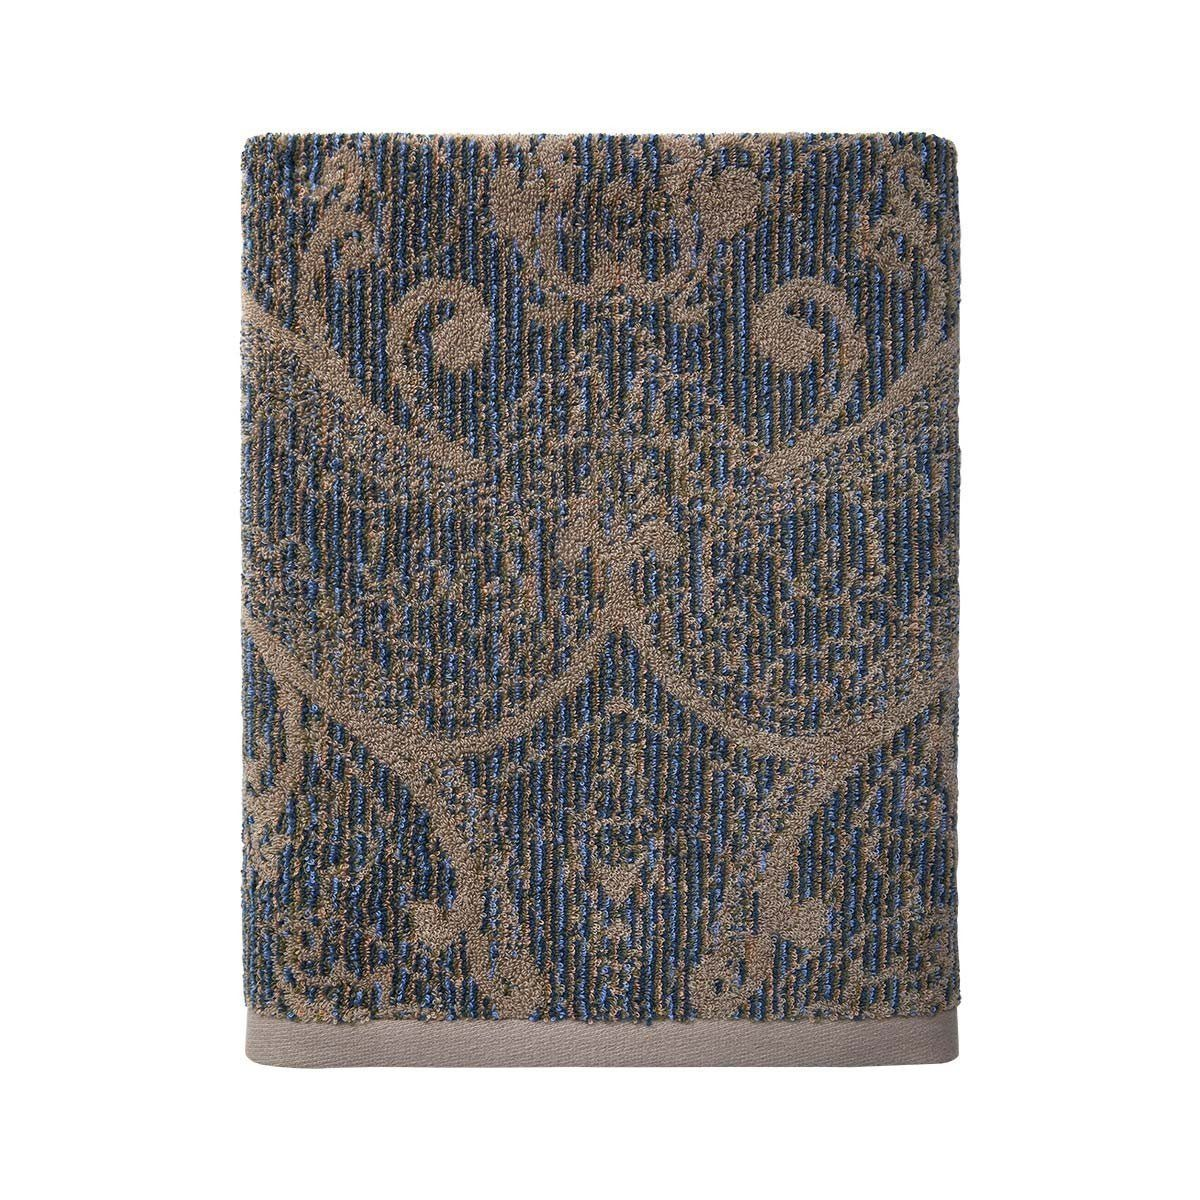 Fig Linens - Yves Delorme Bath Towels - Cachemire Hand Towel